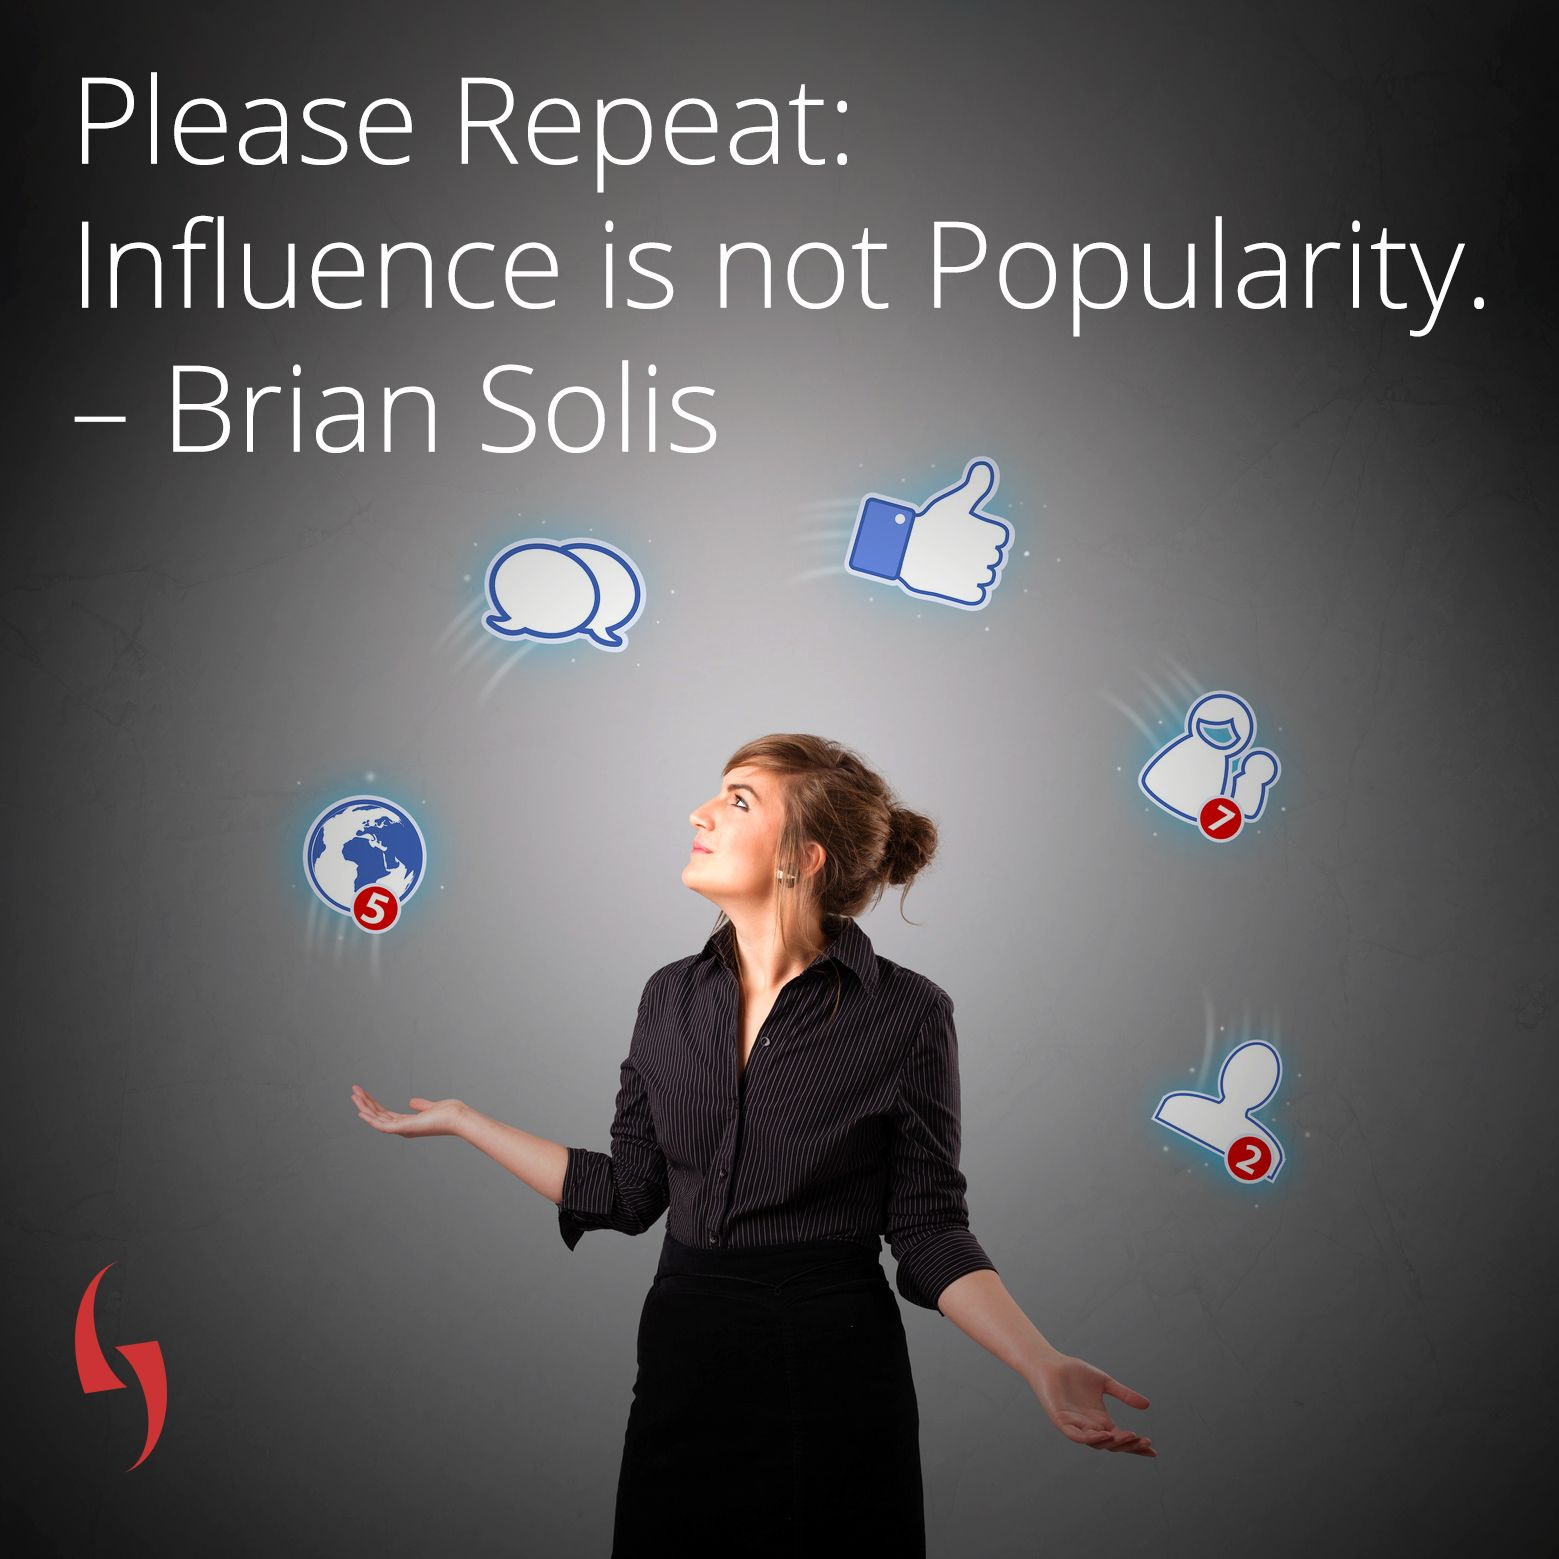 Please Repeat Influence is not Popularity 👍 Brian